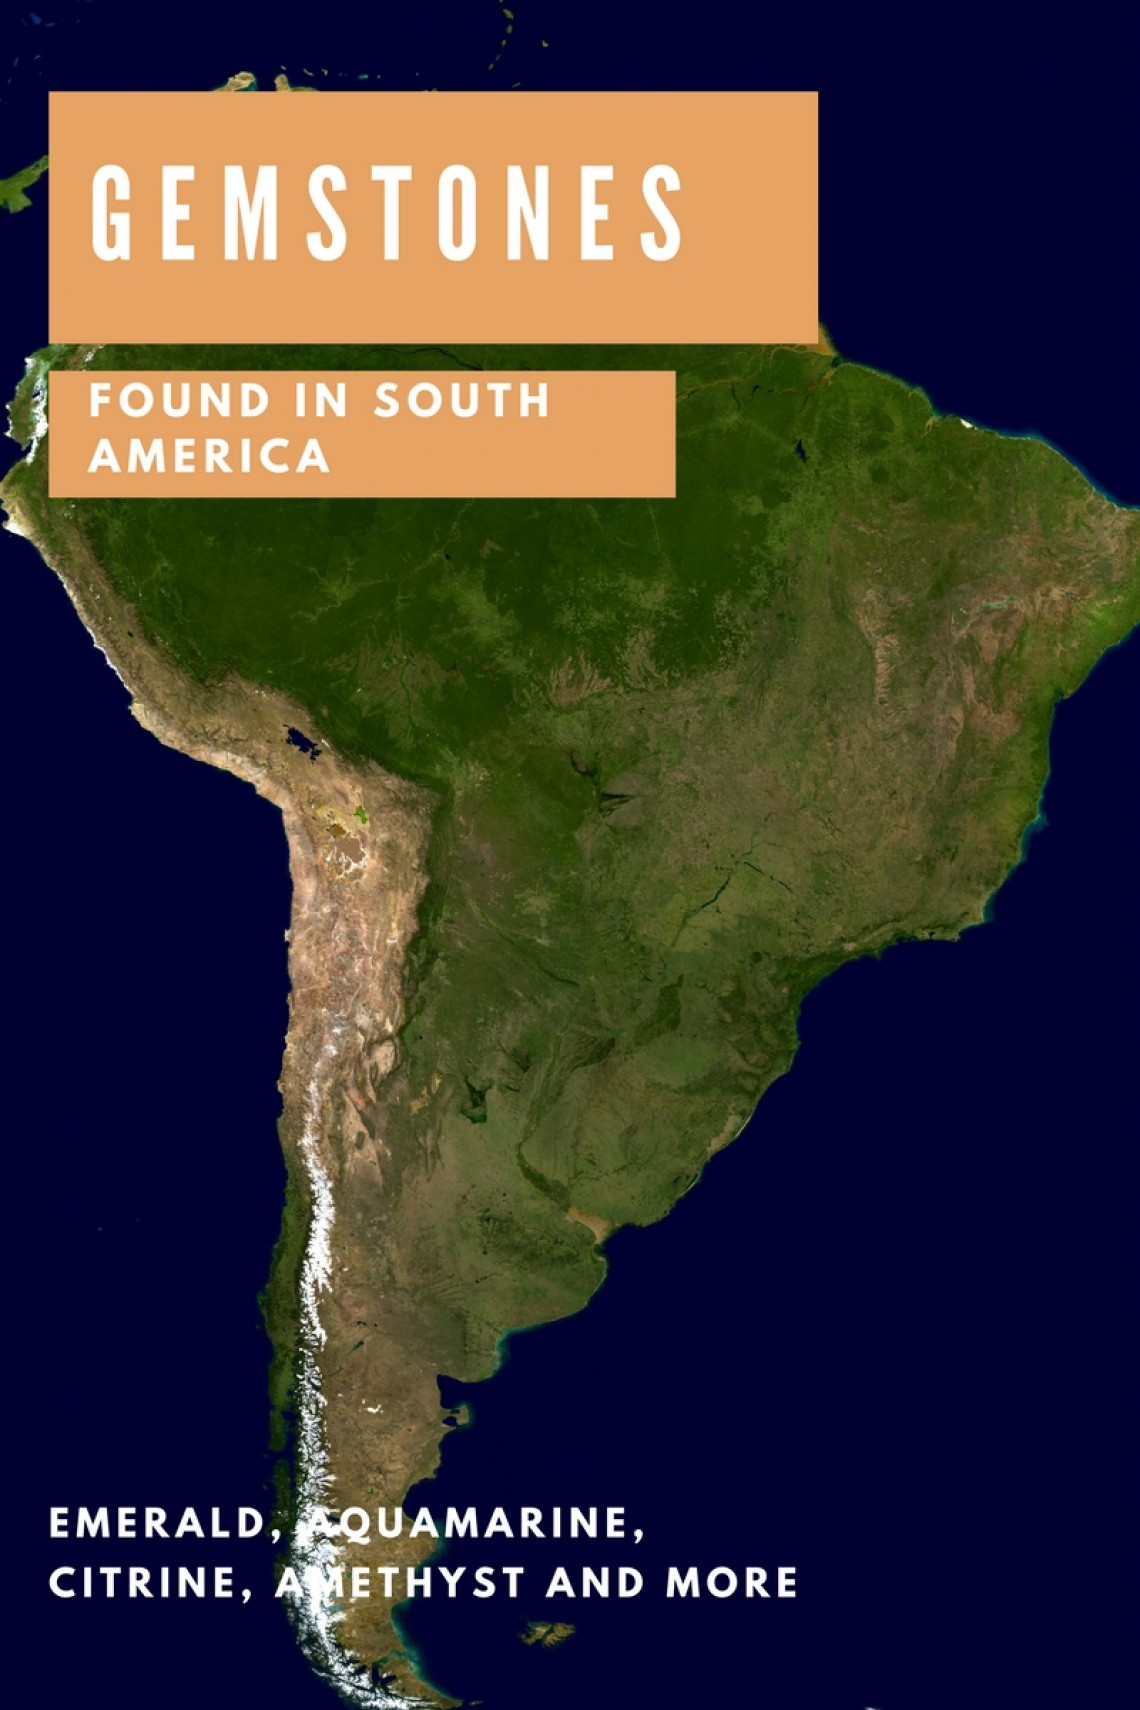 What Gemstones Can Be Found In South America [List]   Gem ... on media map, ne map, vi map, mind map, eclipse map, metal map, elvis map,